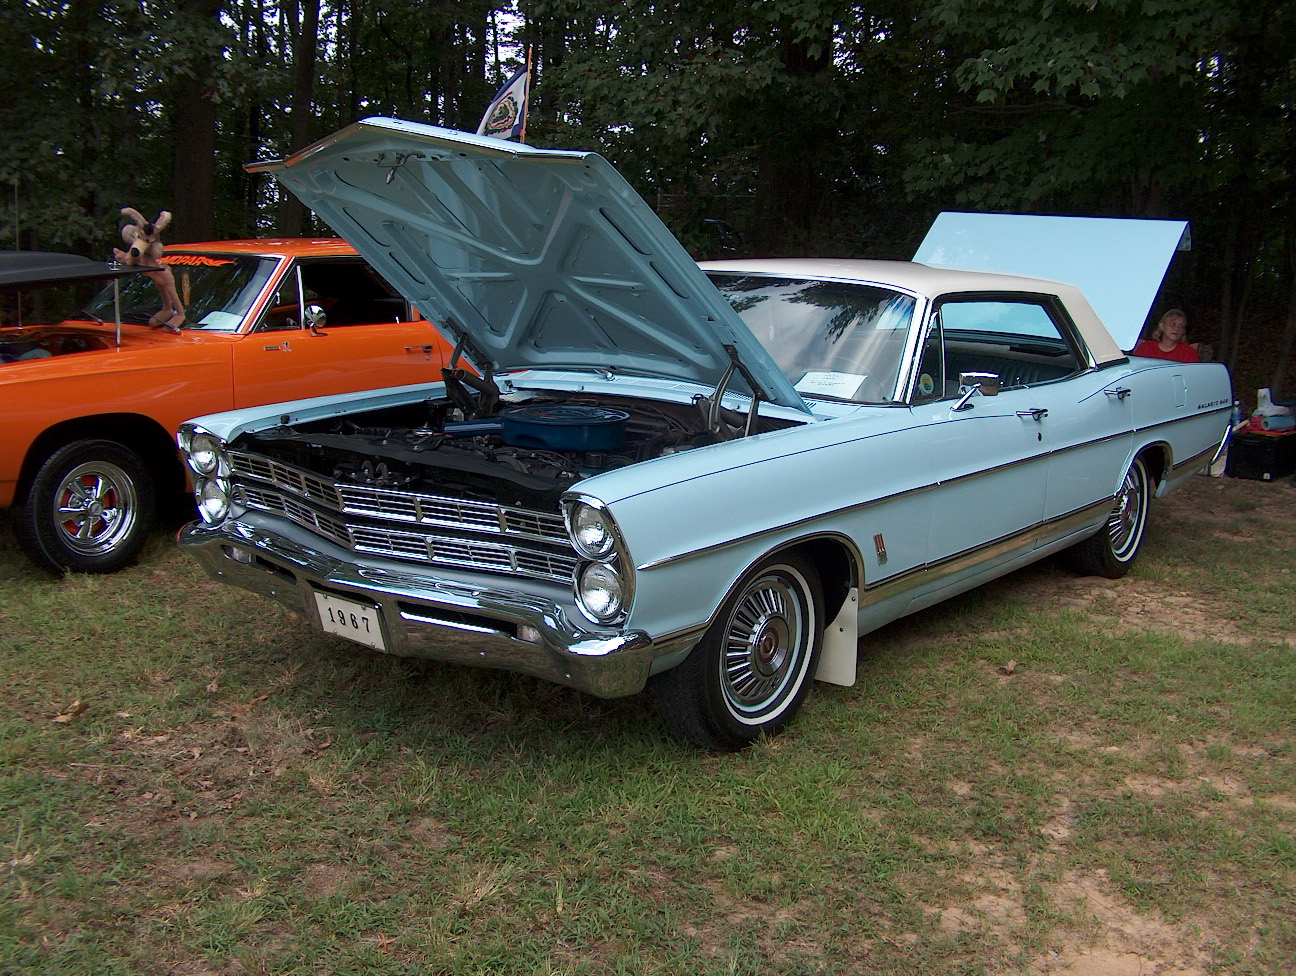 1967 Ford Galaxie 500 4 Dr Hardtop